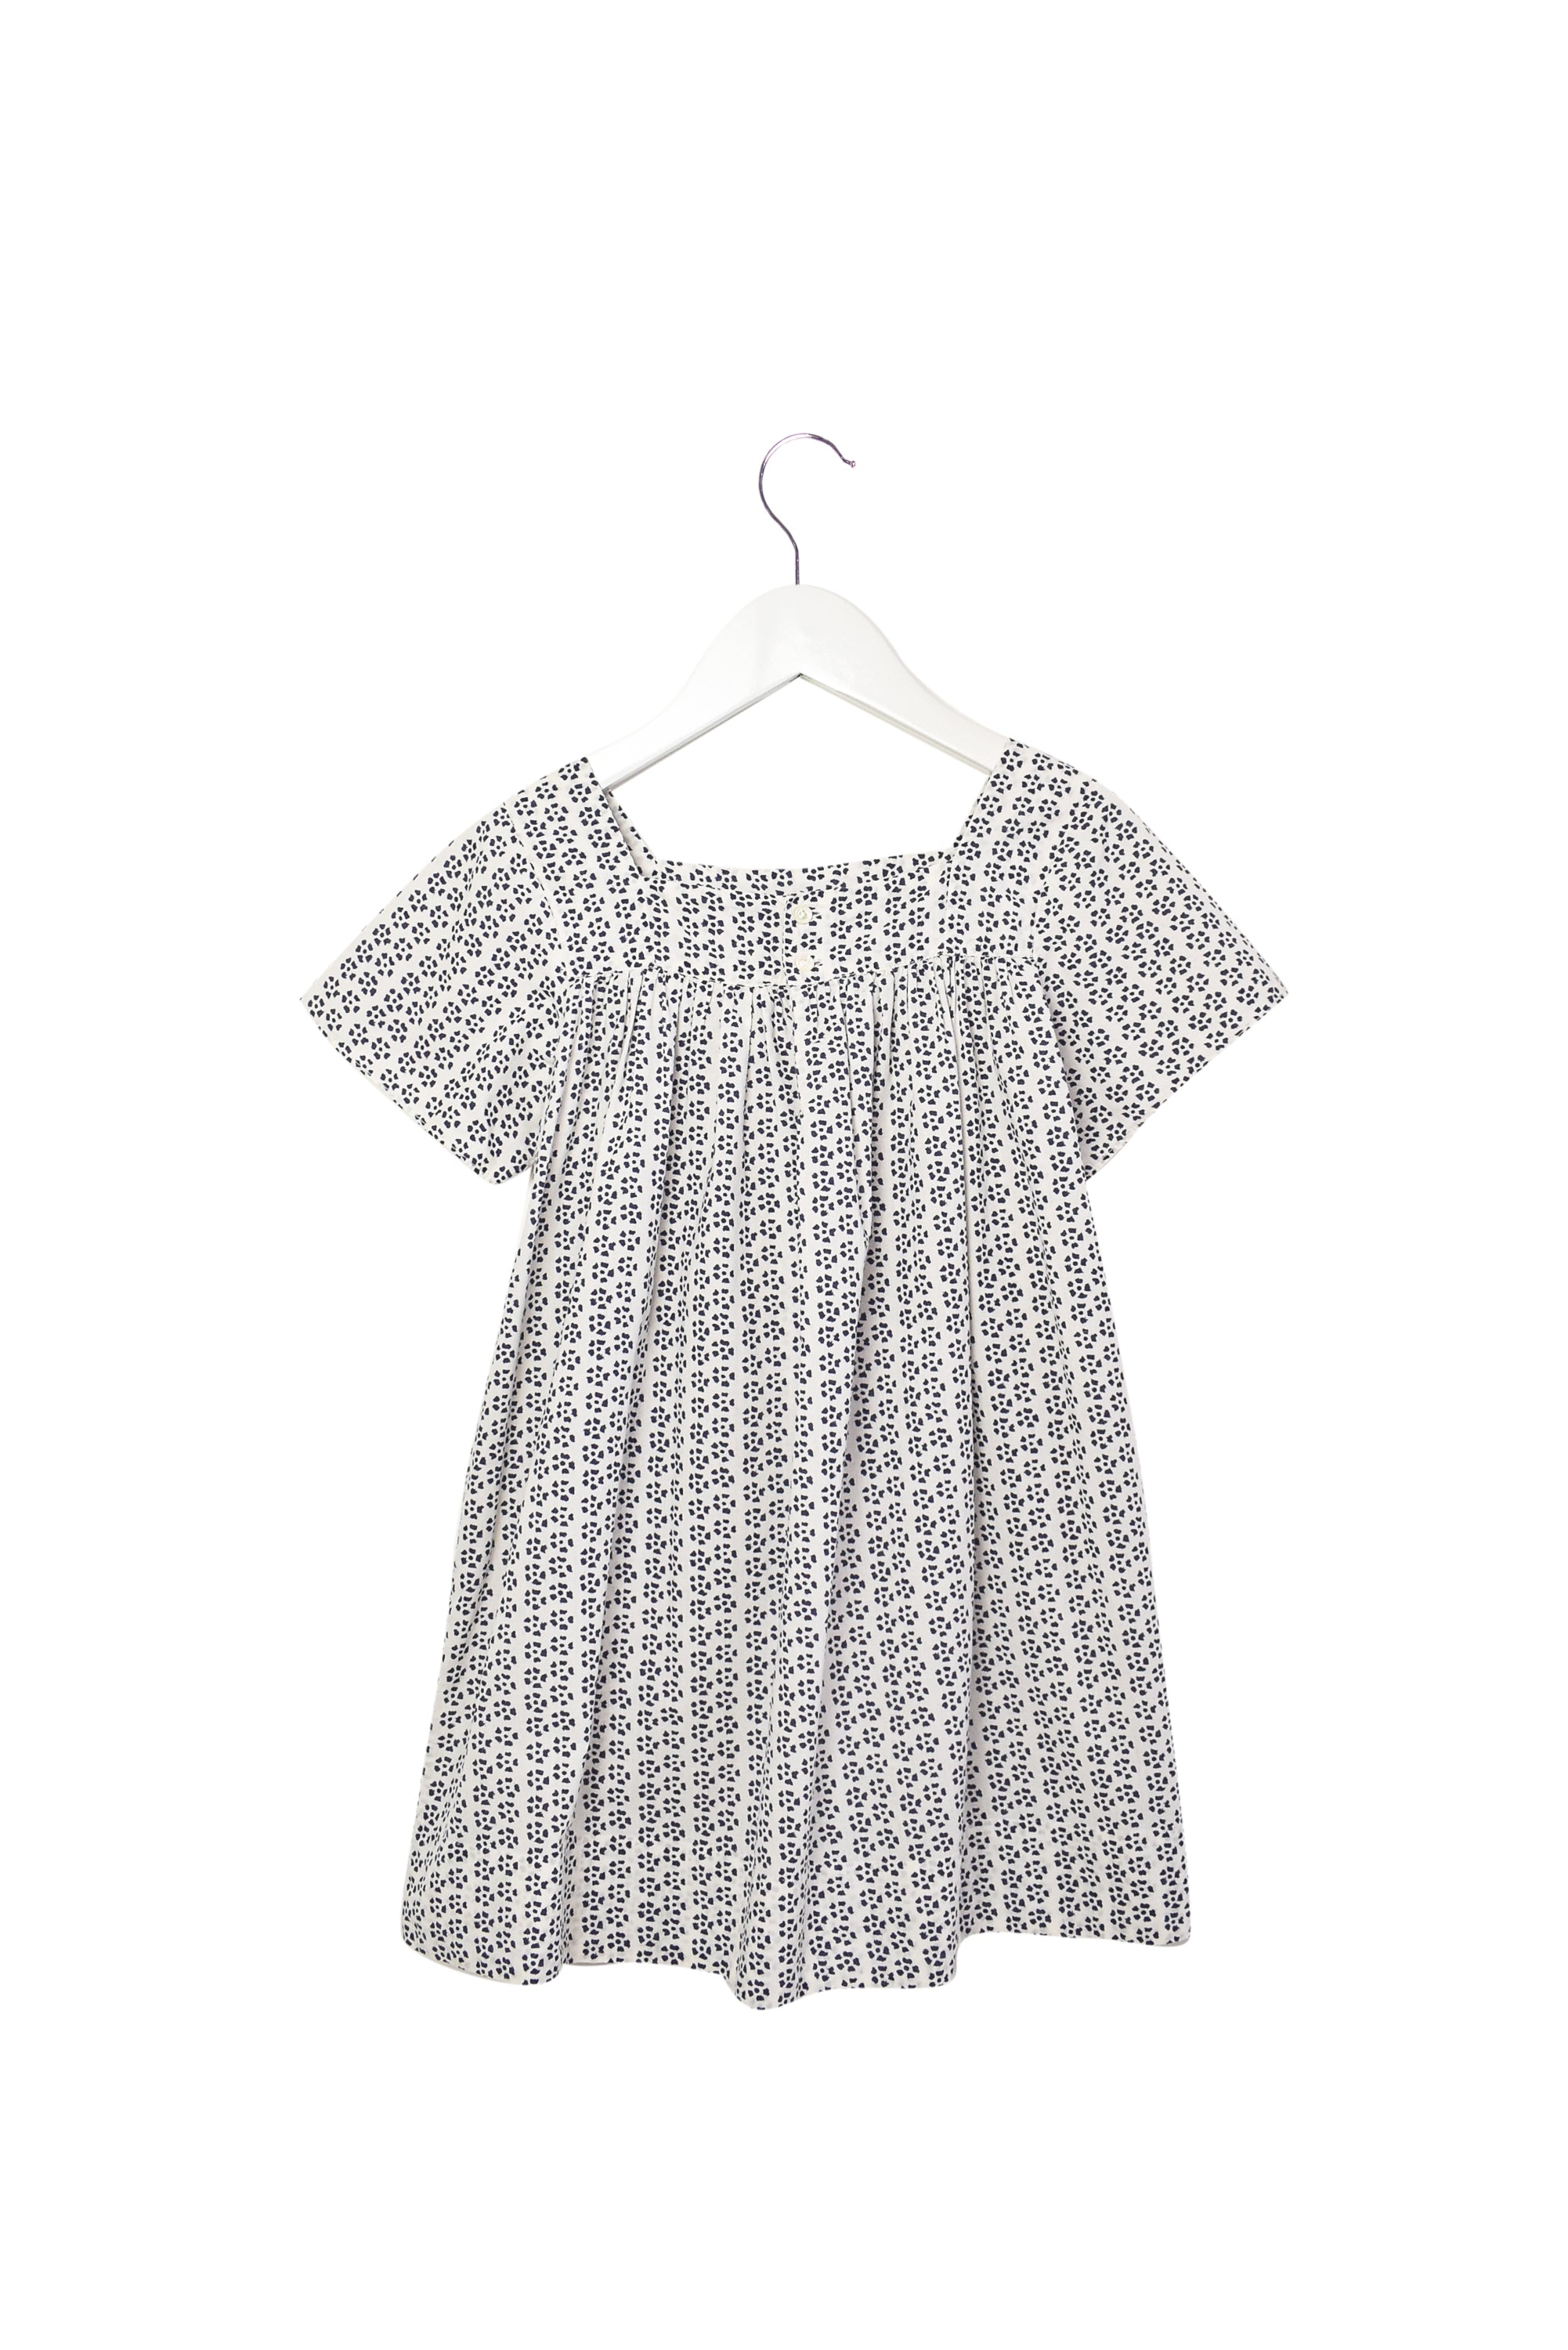 10009232 Bonpoint Kids~Dress 6T at Retykle